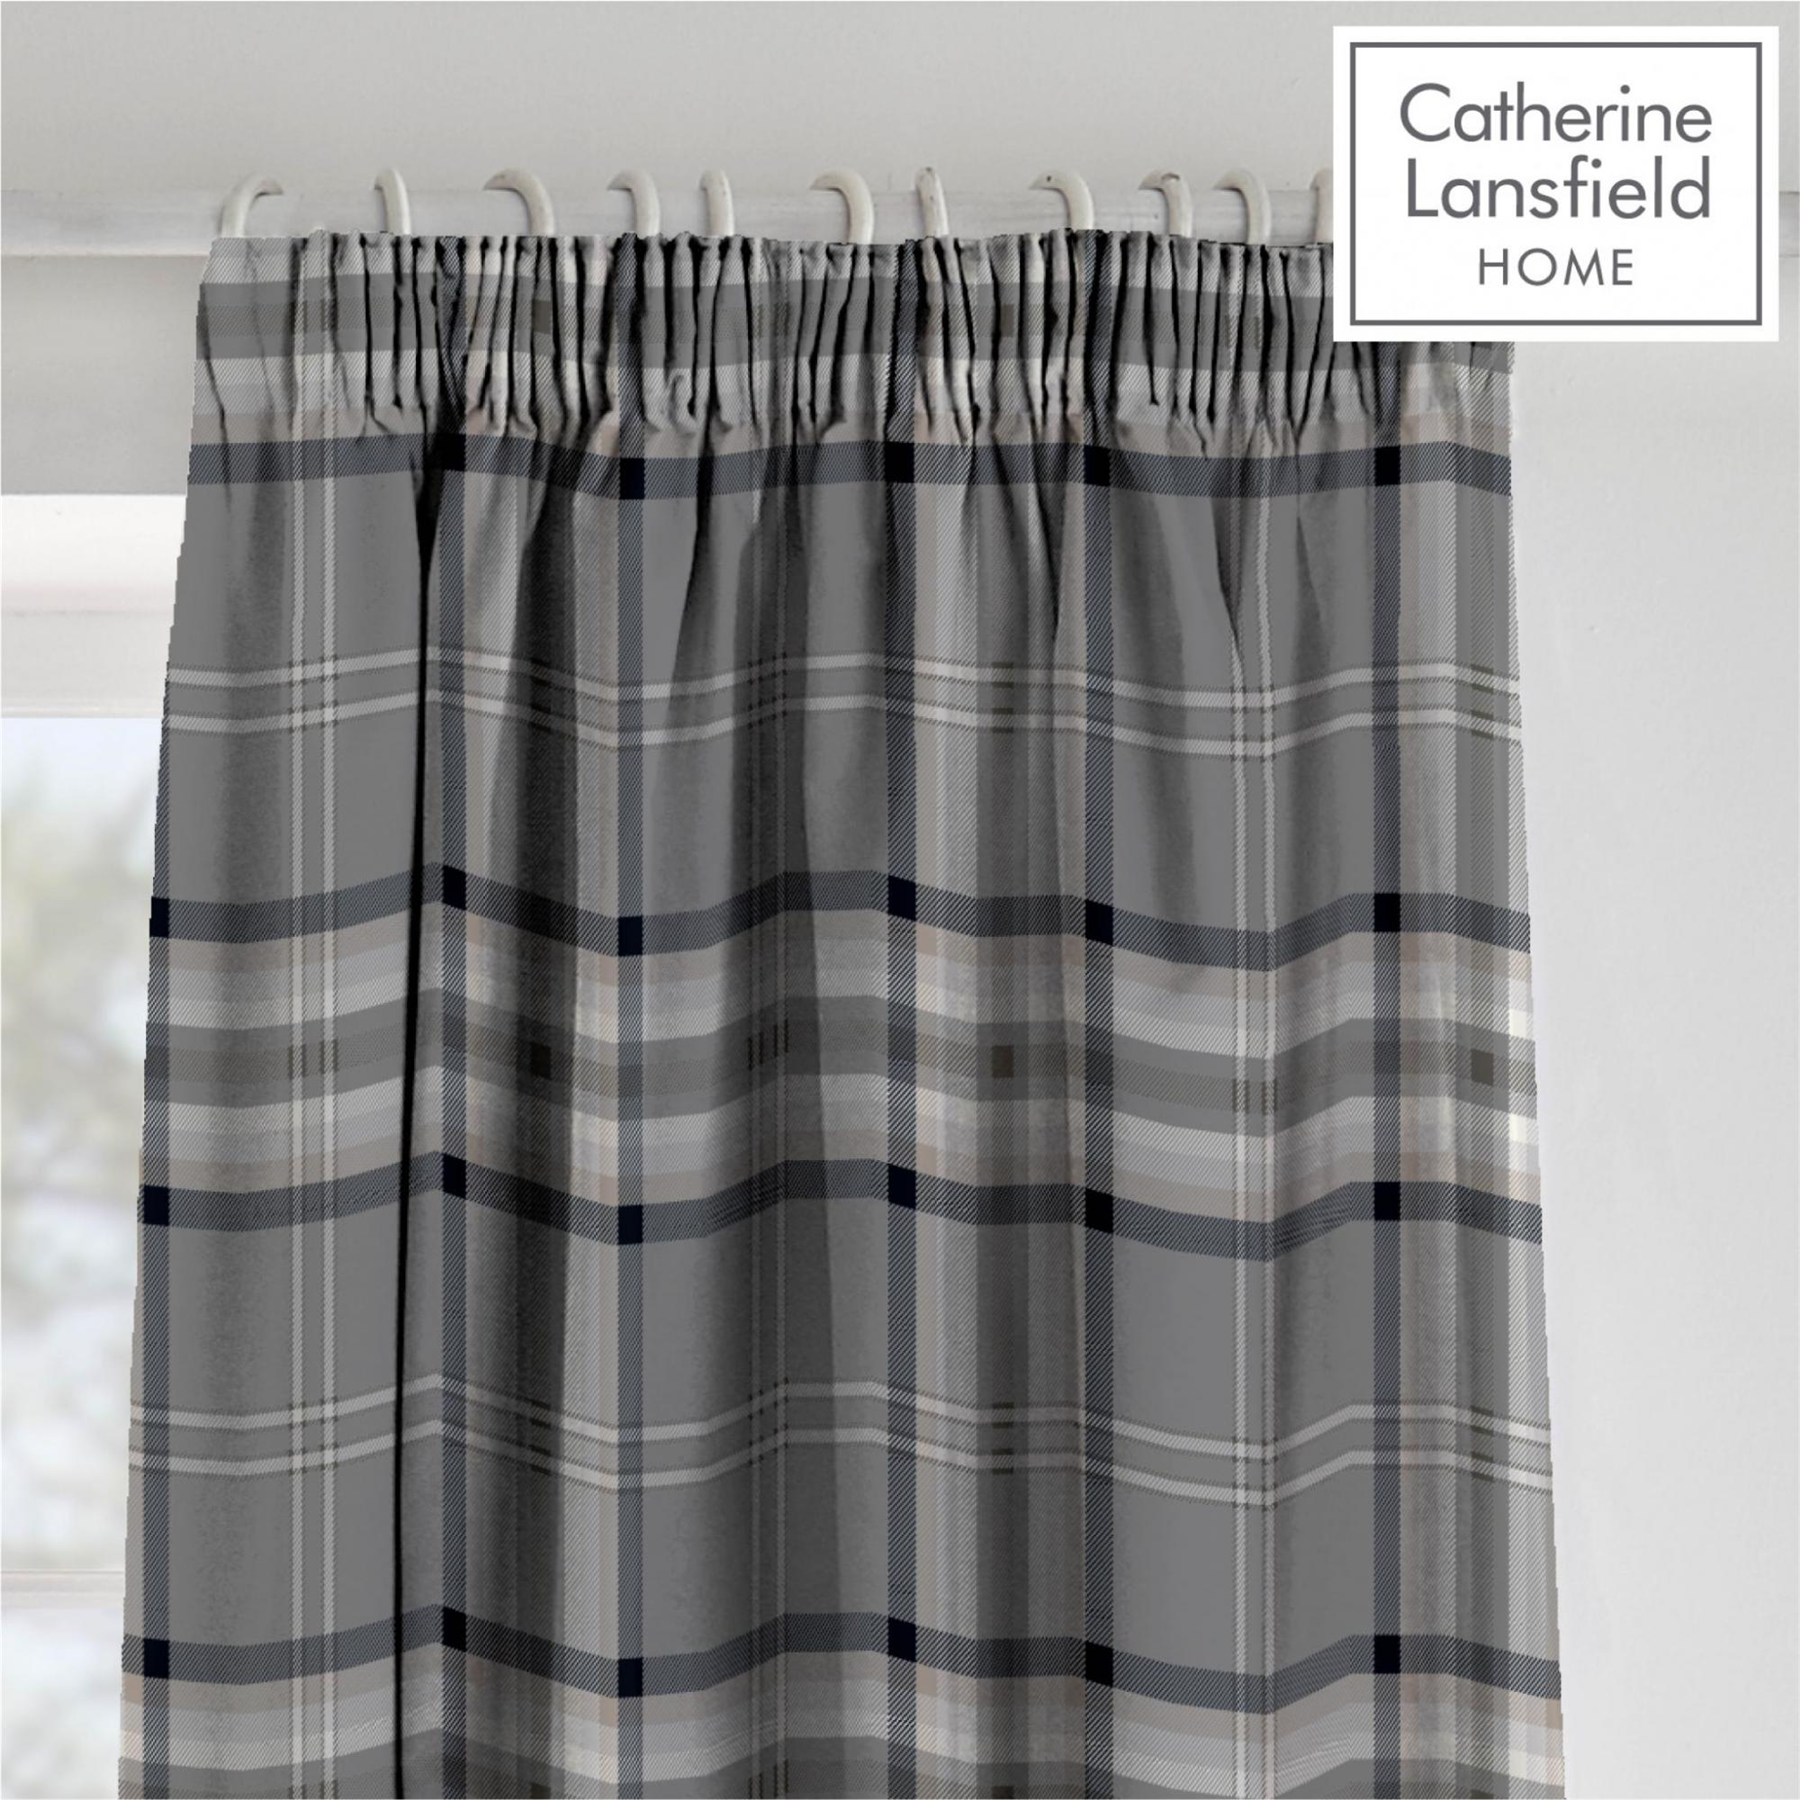 Catherine-Lansfield-Duvet-Set-Reversible-Check-Bedding-Charcoal-Pillows-Curtain thumbnail 4